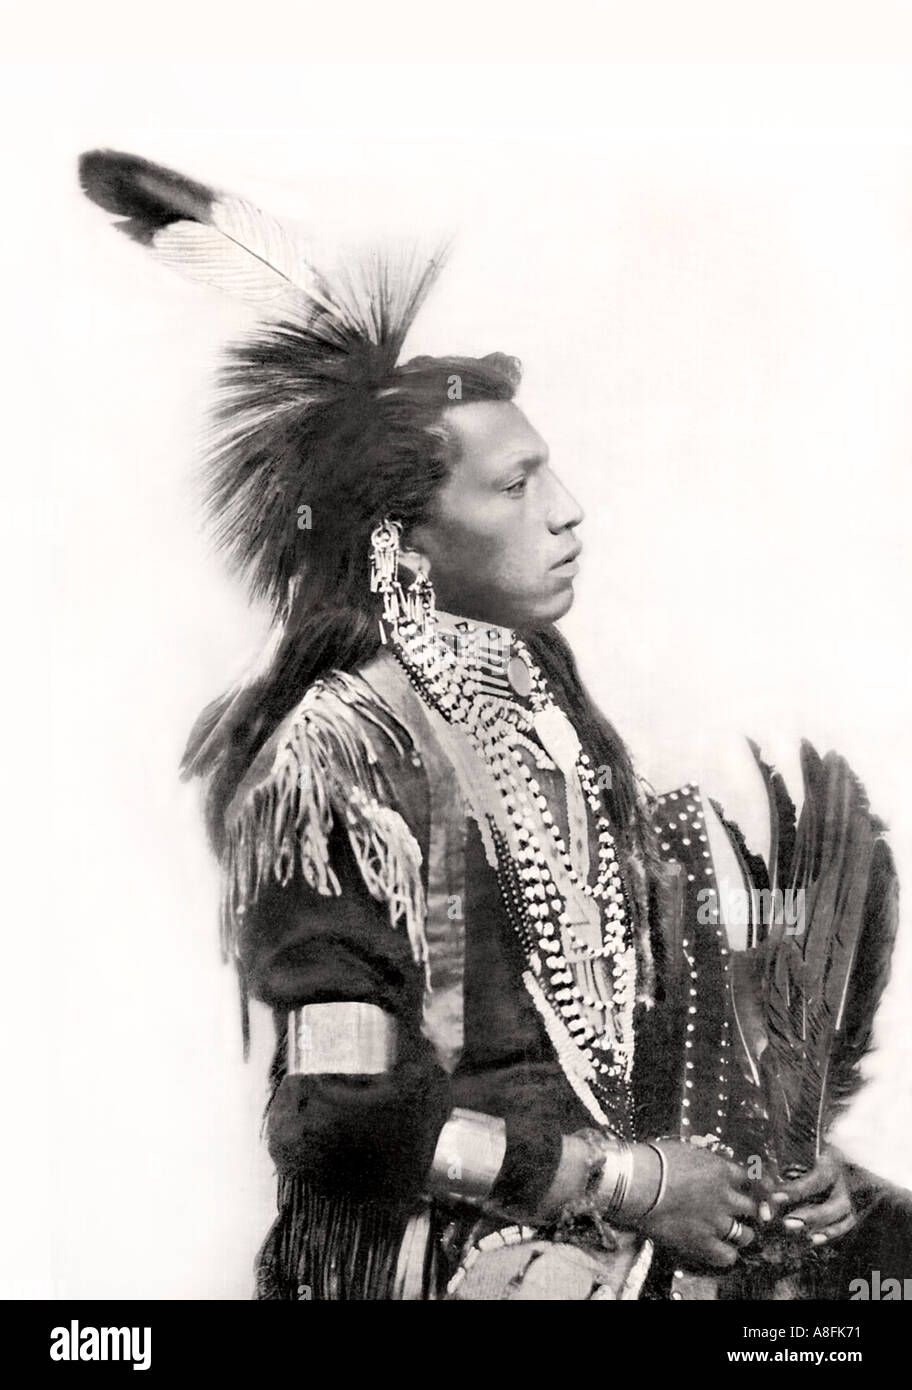 19th century portrait of a native american indian from old